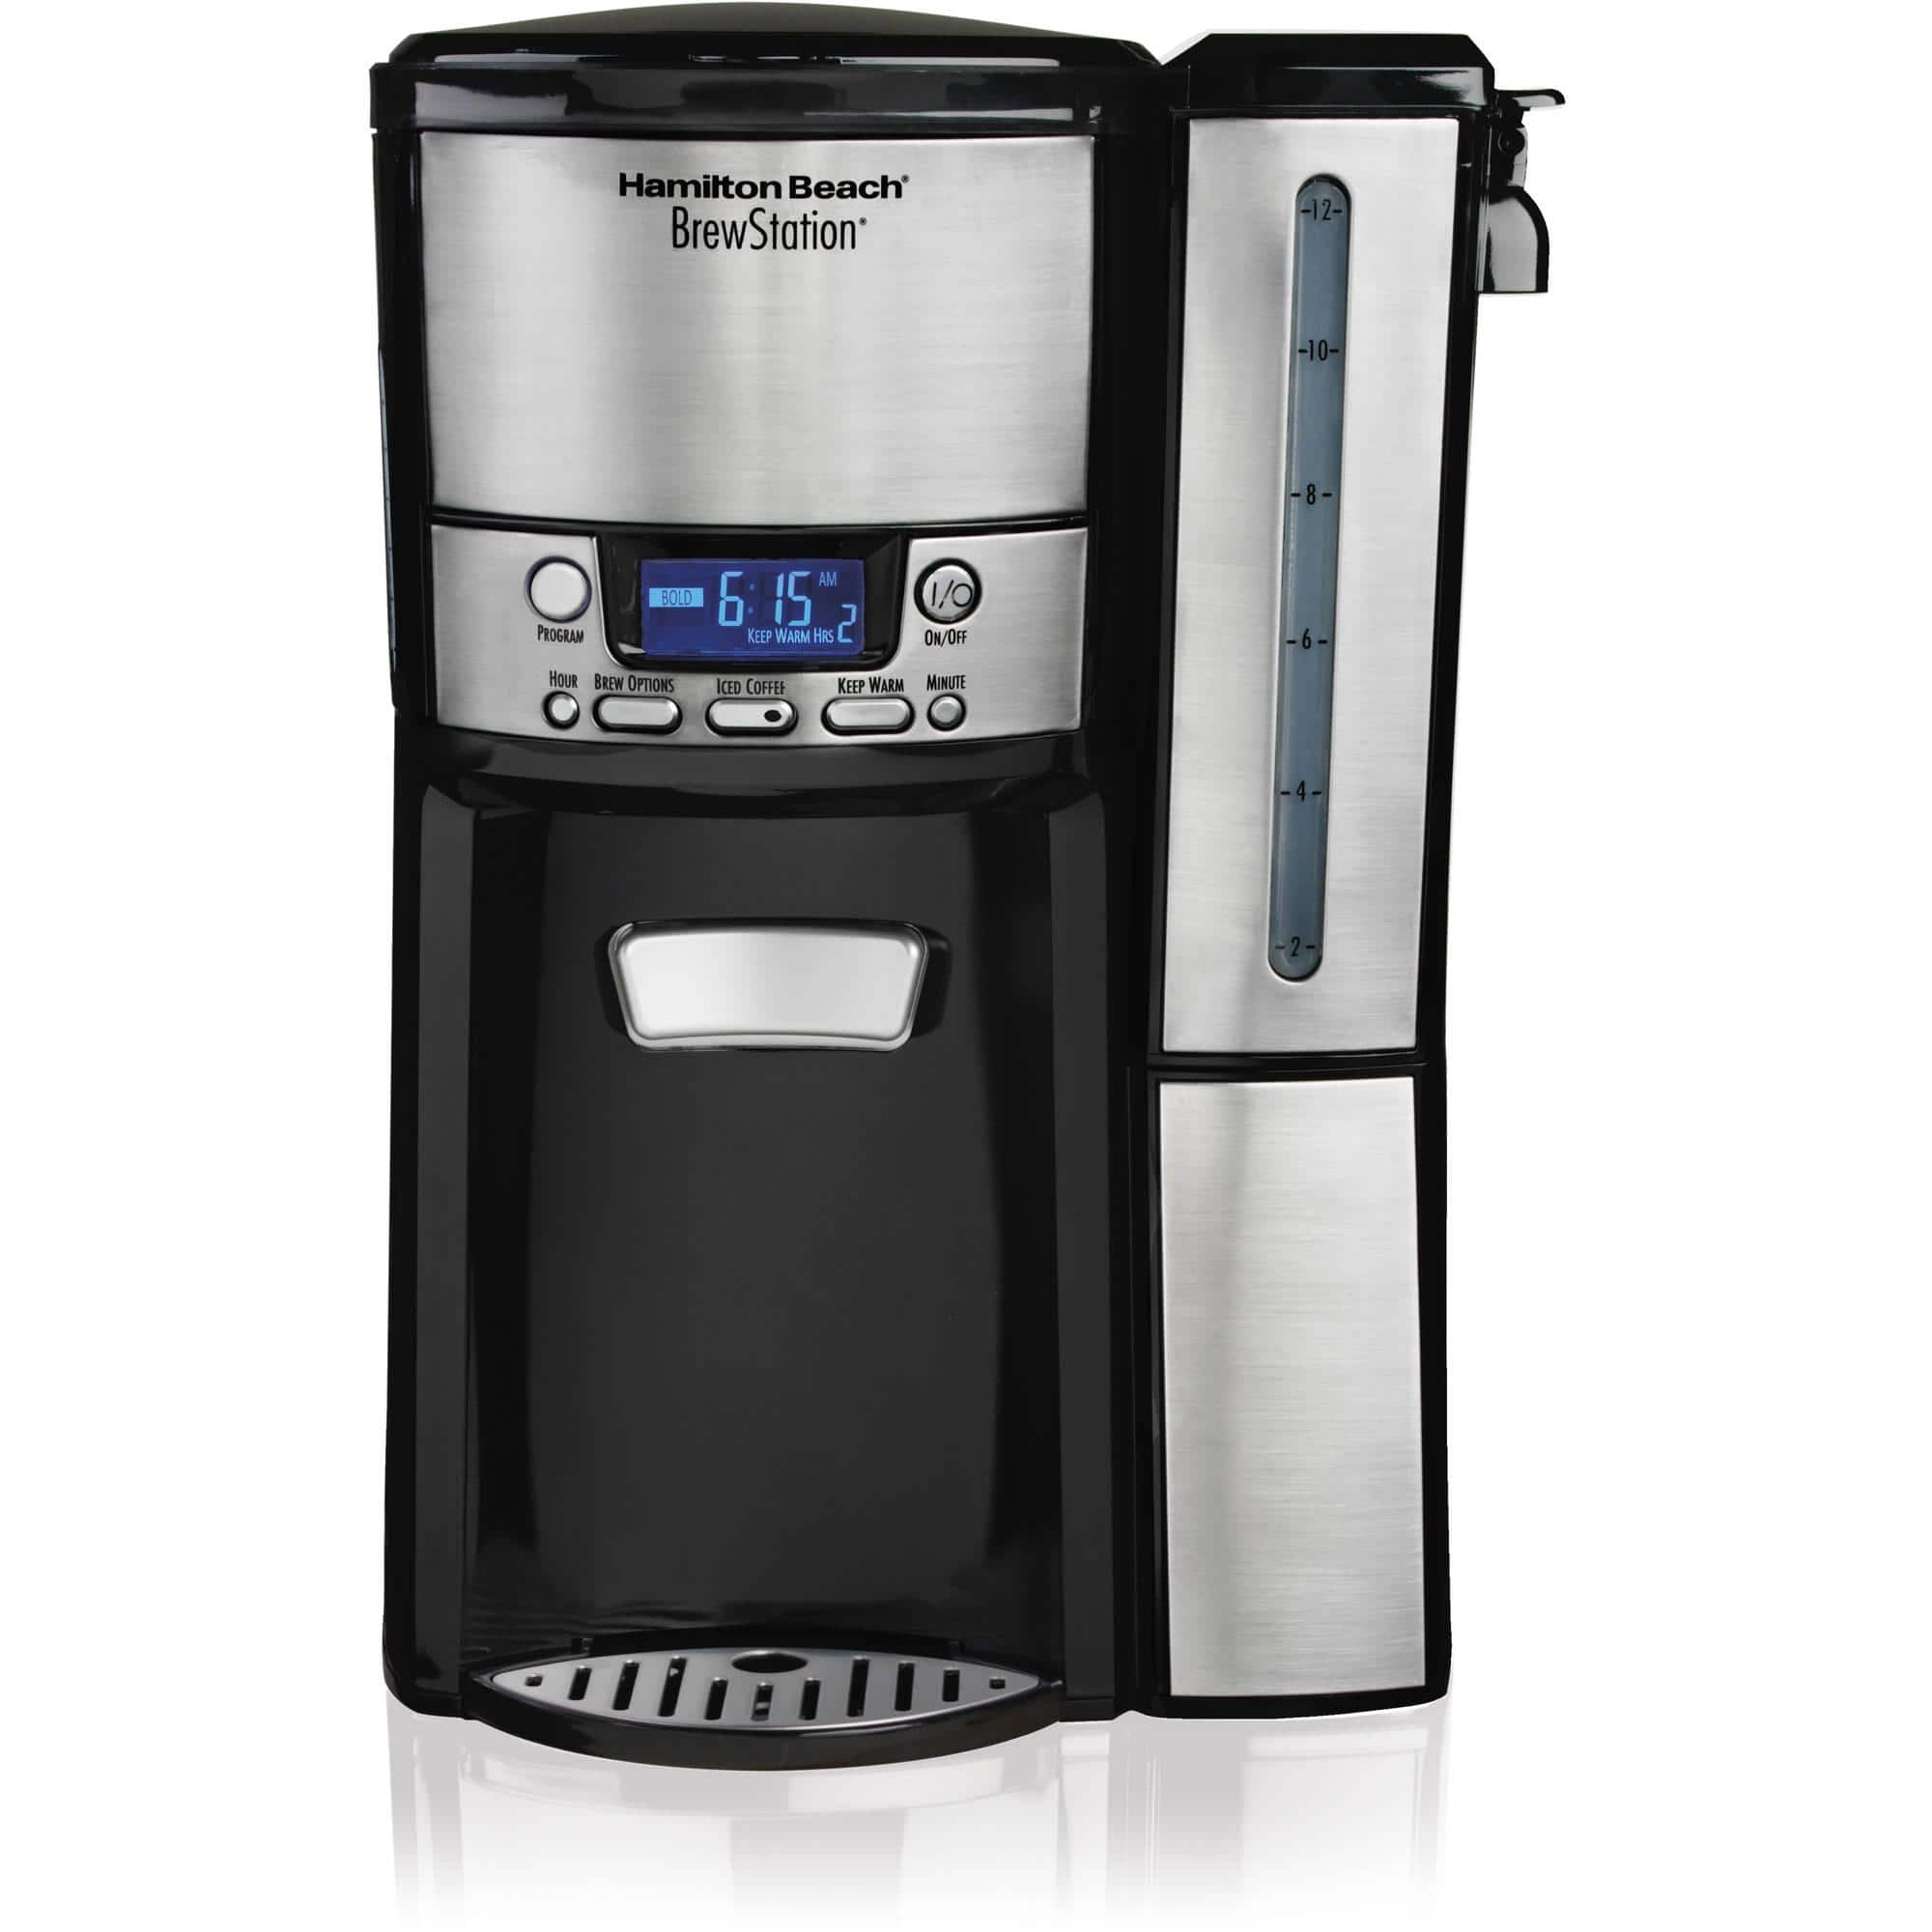 Bon-Ton: Up to 80% Off Home Closeouts -  Hamilton Beach BrewStation 12-Cup Dispensing Coffeemaker with Removable Reservoir $30 and much more!!!